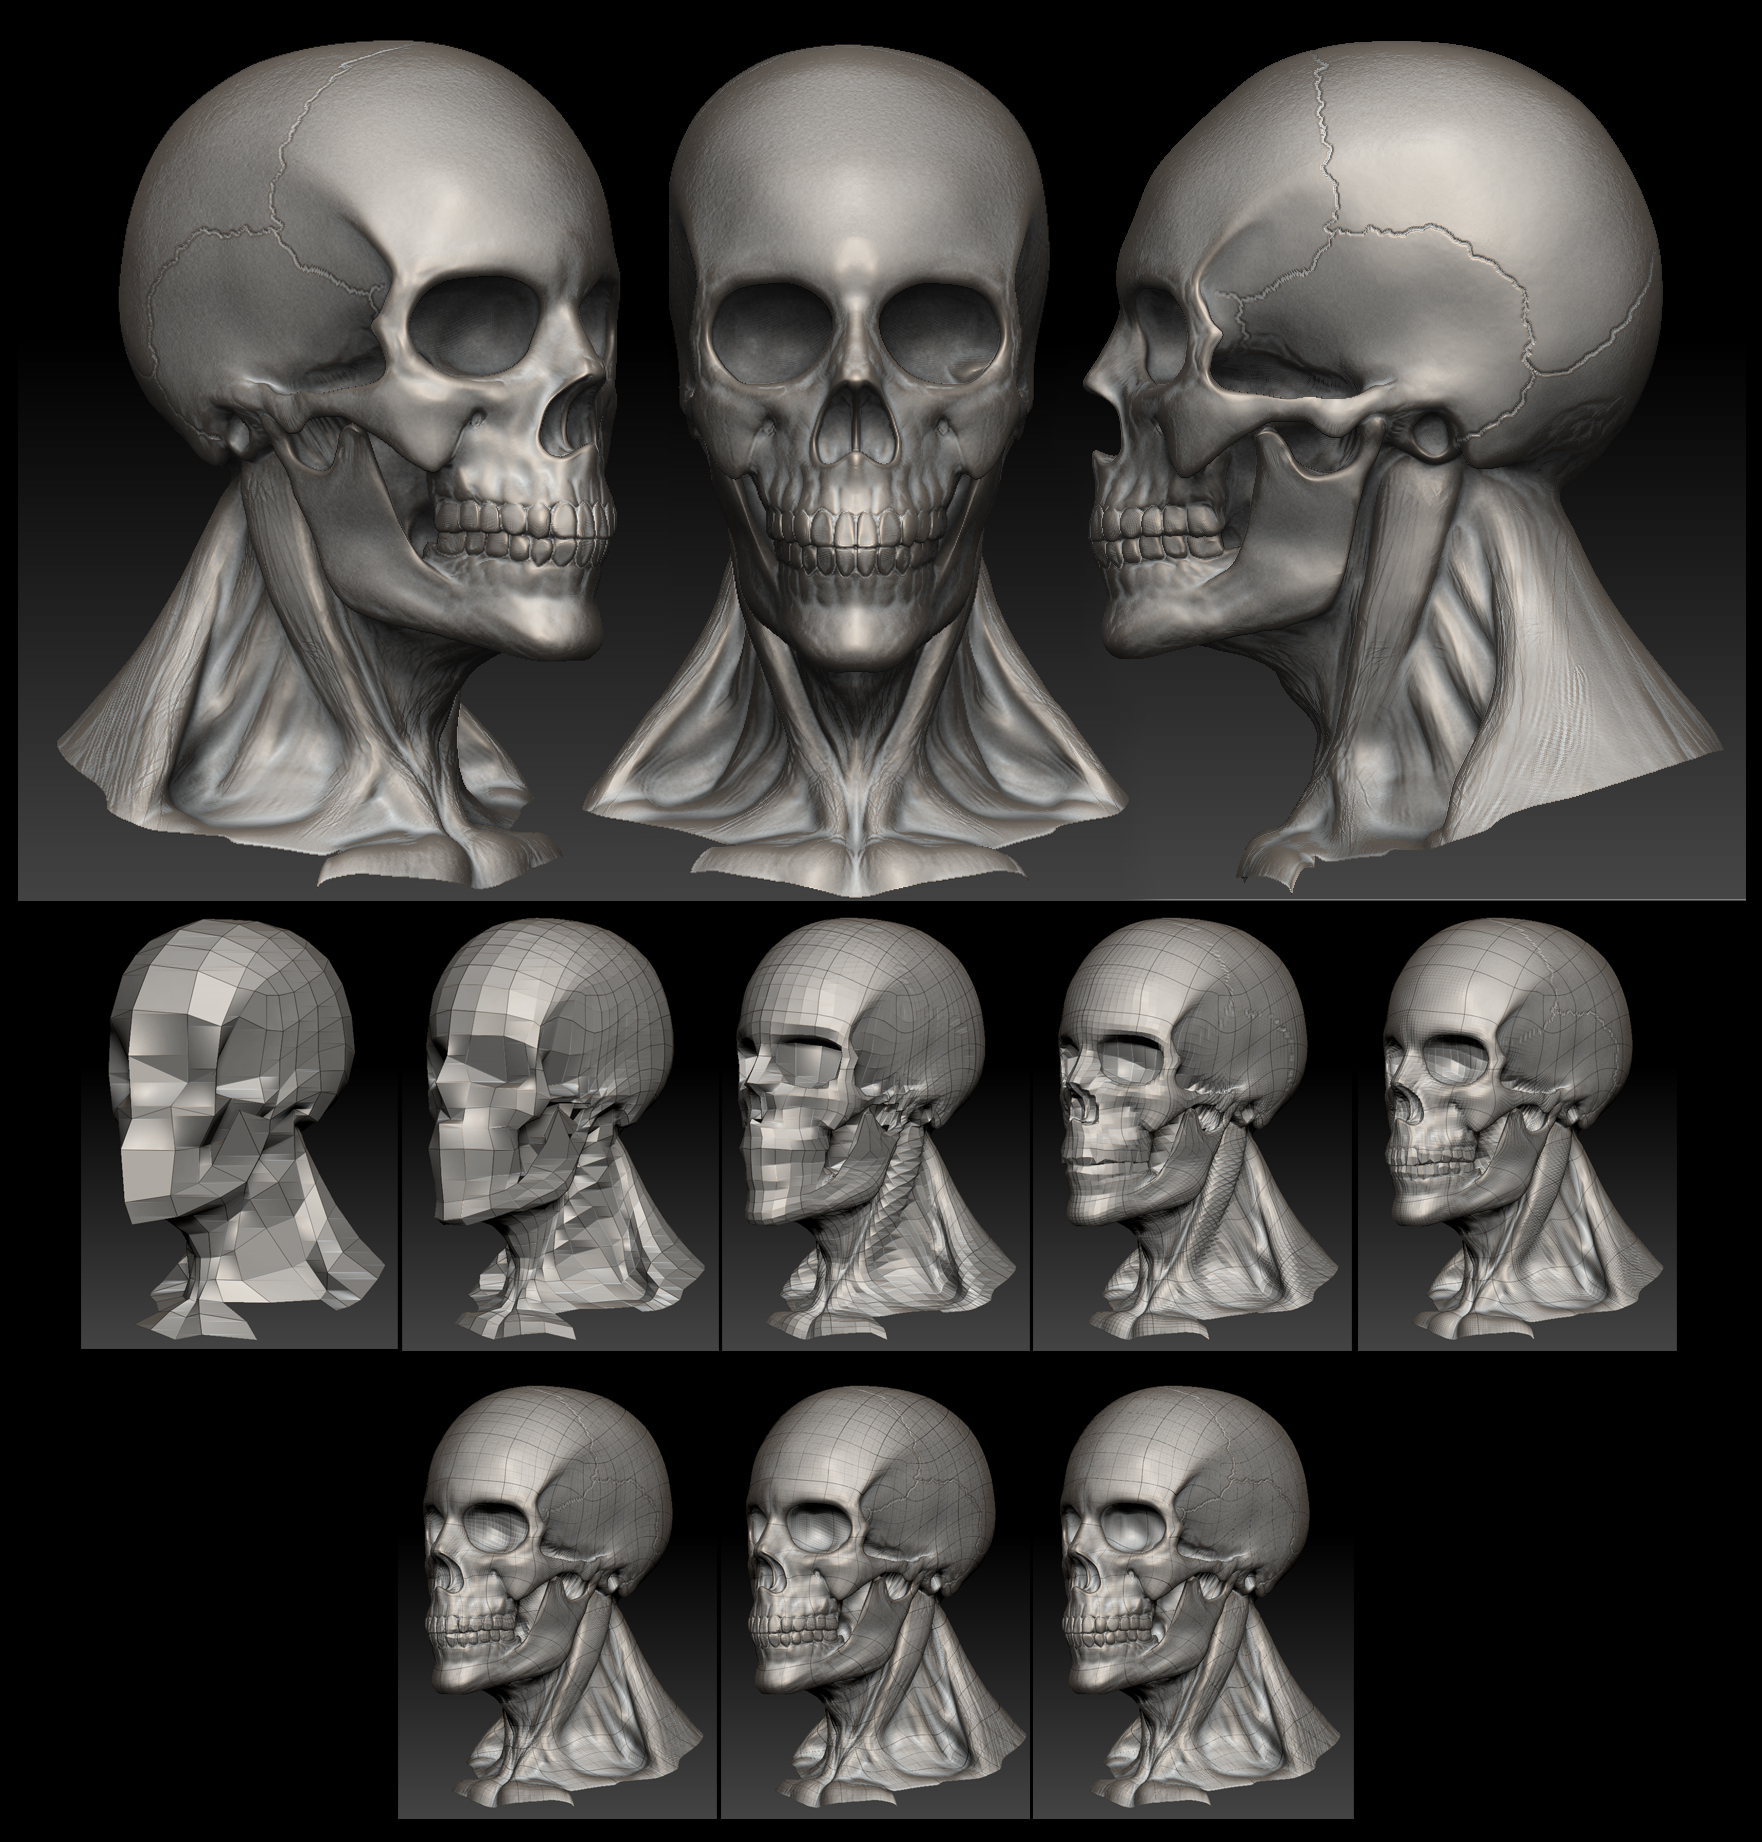 SKULL_DFEX_SKETCHBOOK_03